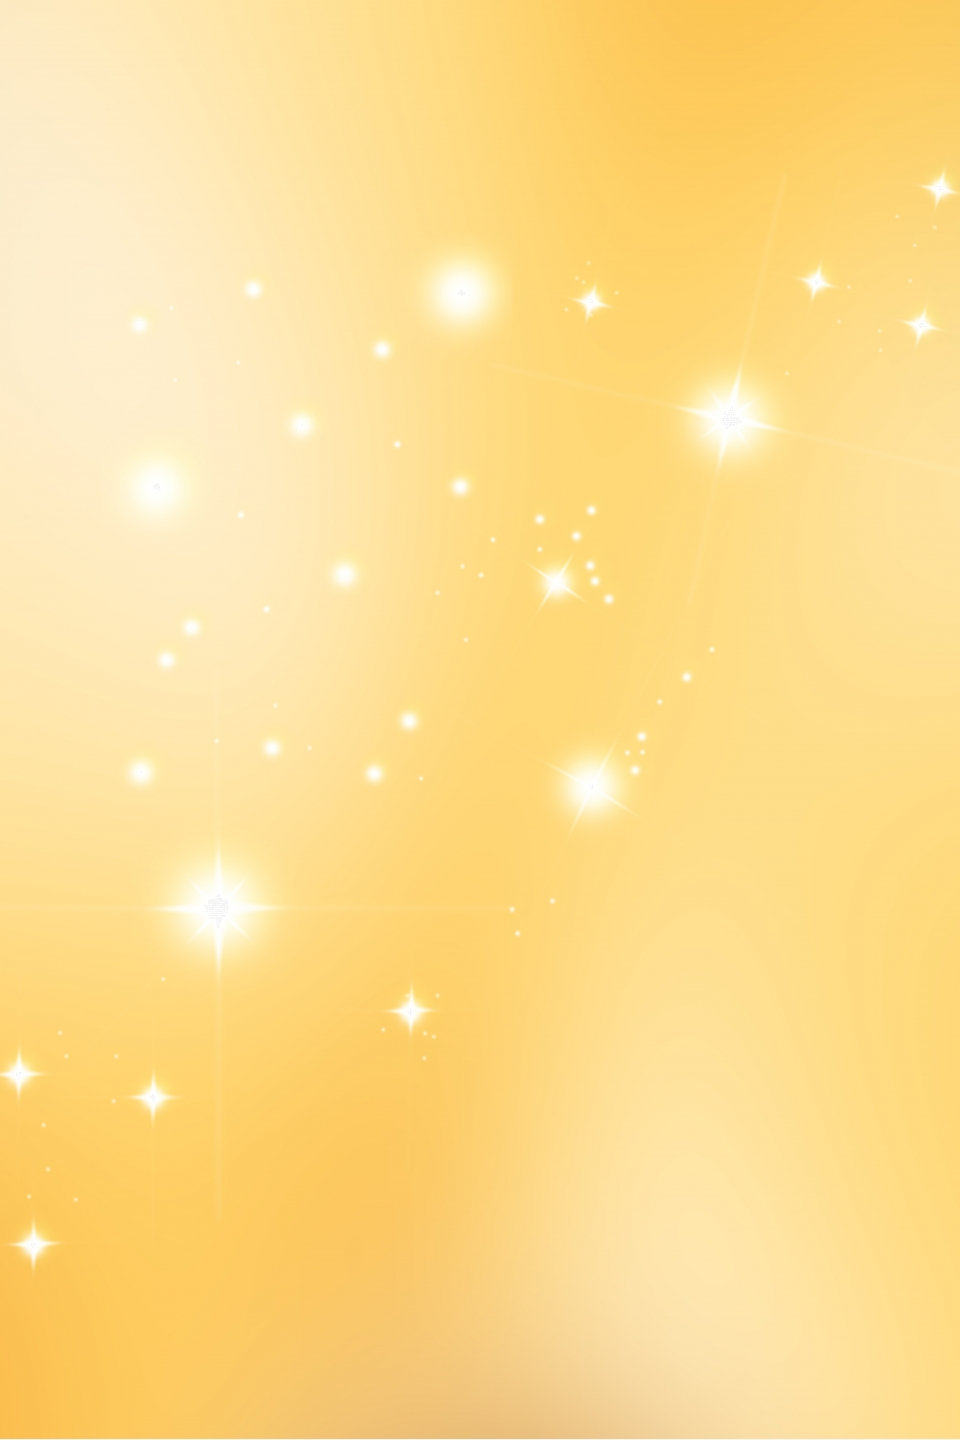 pngtree-golden-gradient-dreamy-backgroun